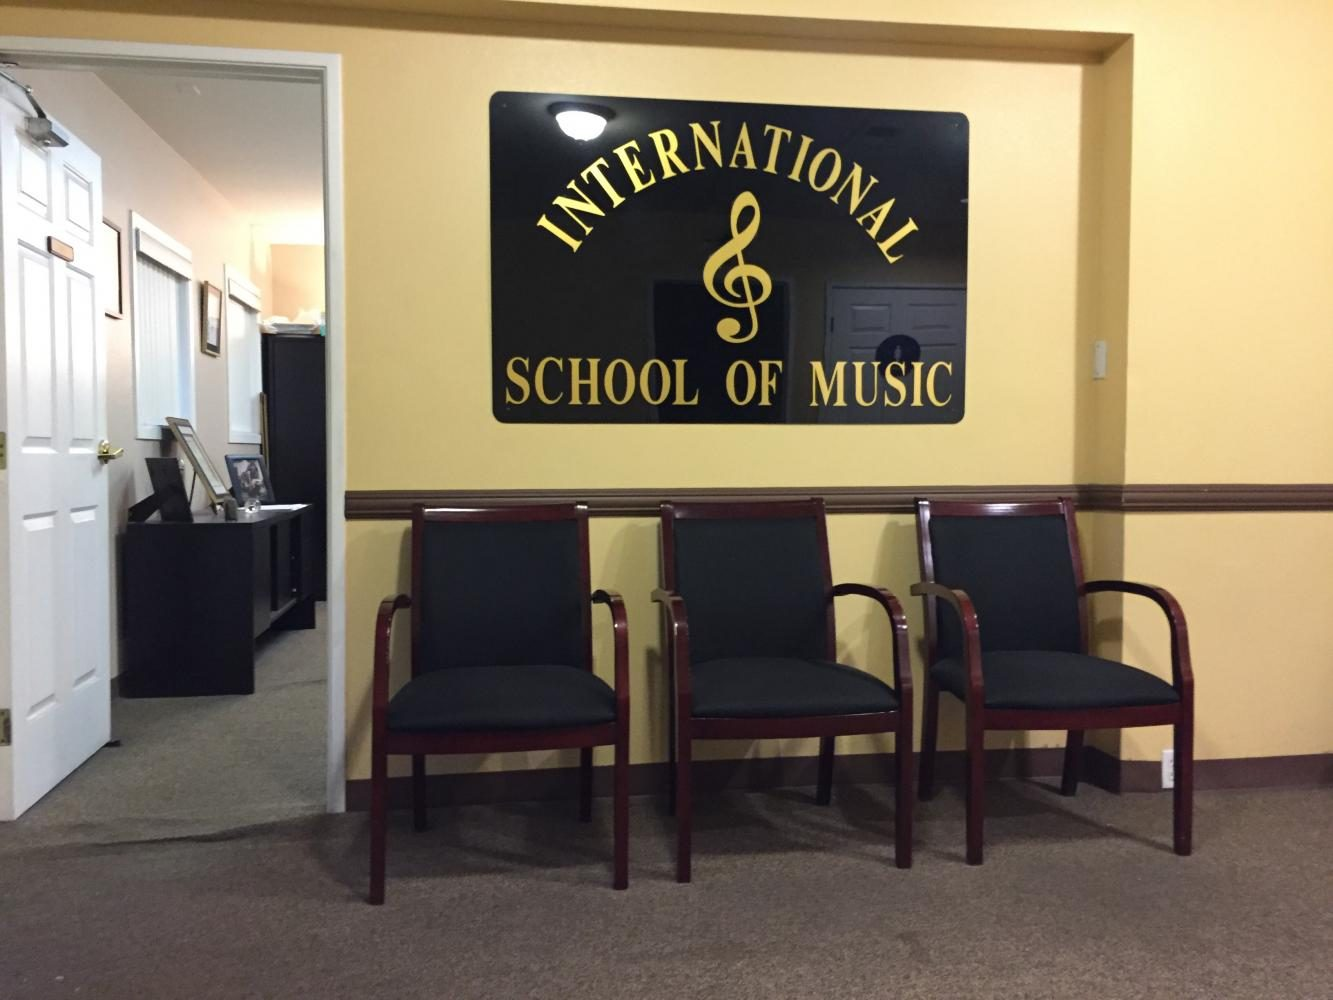 The+waiting+room+at+the+International+School+of+Music+in+Glendale.